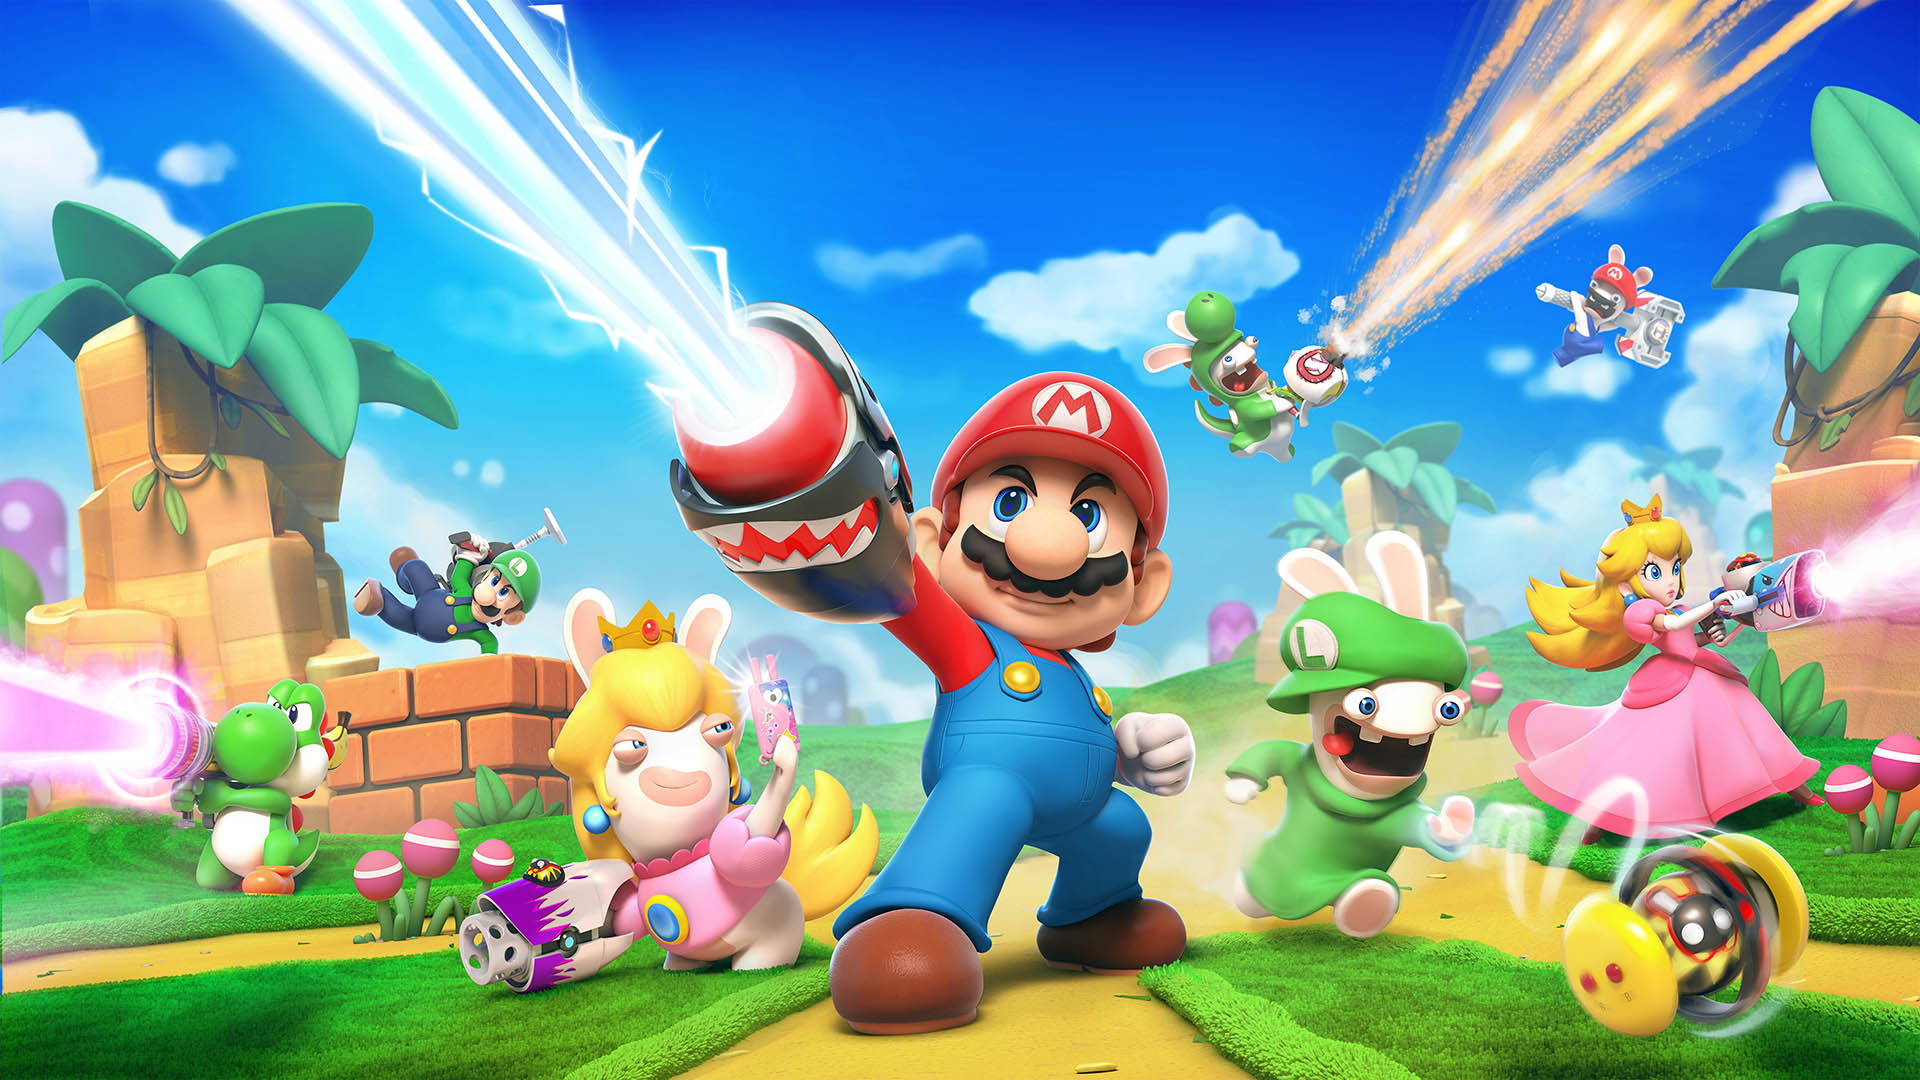 This artwork for Mario + Rabbids Kingdom Battle shows Mario shooting some sort of laser gun that is attached to his arm. Behind him various rabbids and Mario characters such as Princess Peach and Yoshi are shooting their own weapons and leaping over piec